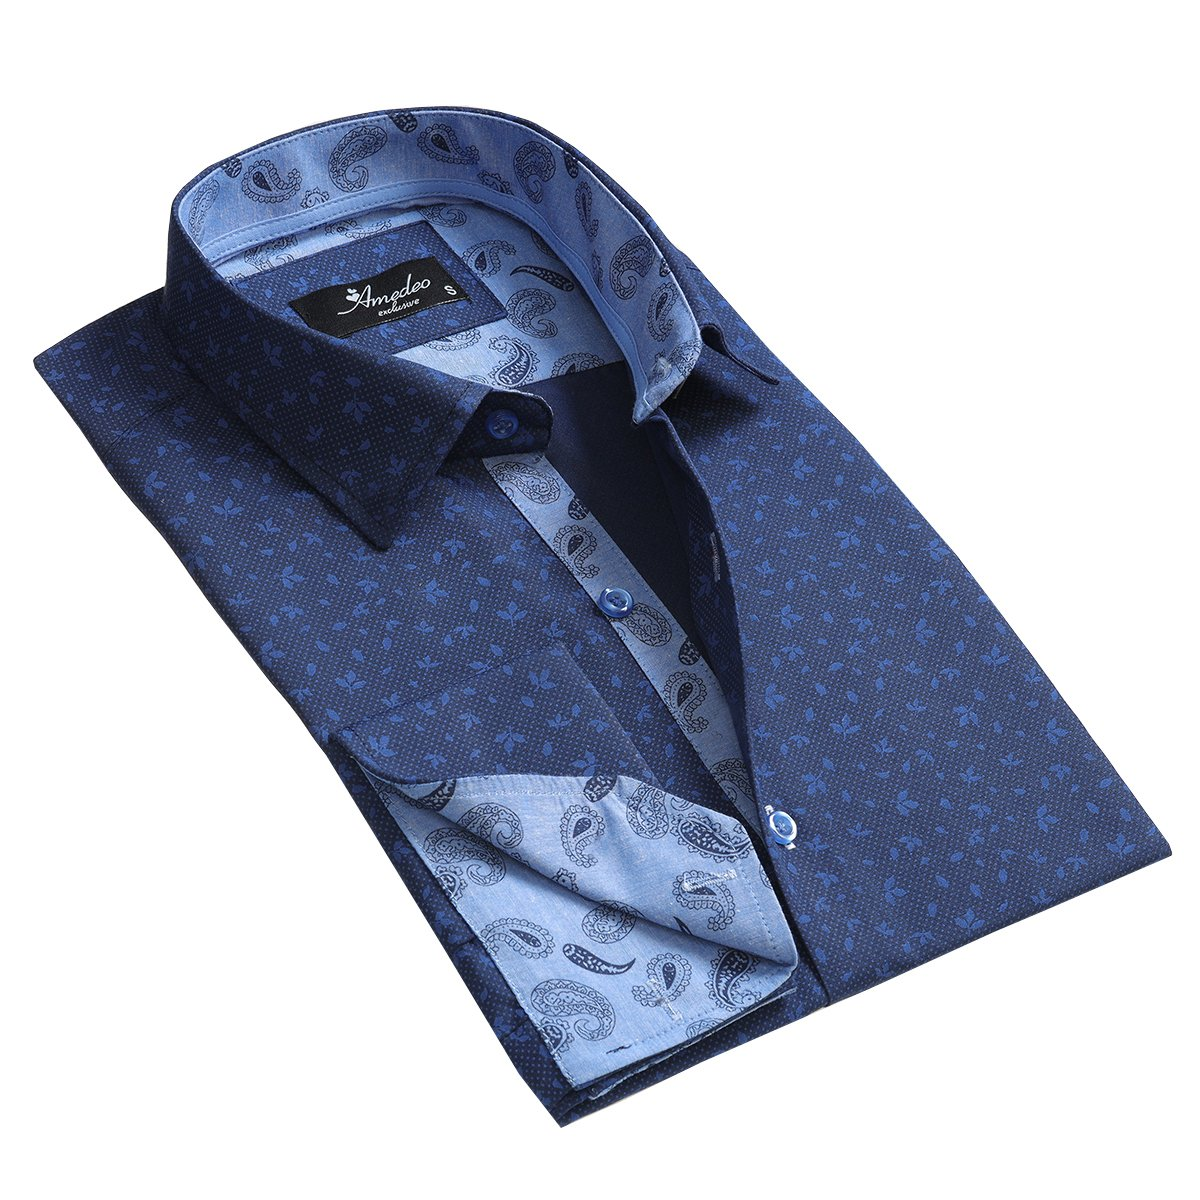 Blue Floral Floral Design Men's Reversible Dress Shirt, Button Down Slim Fit with French Cuff Casual and Formal